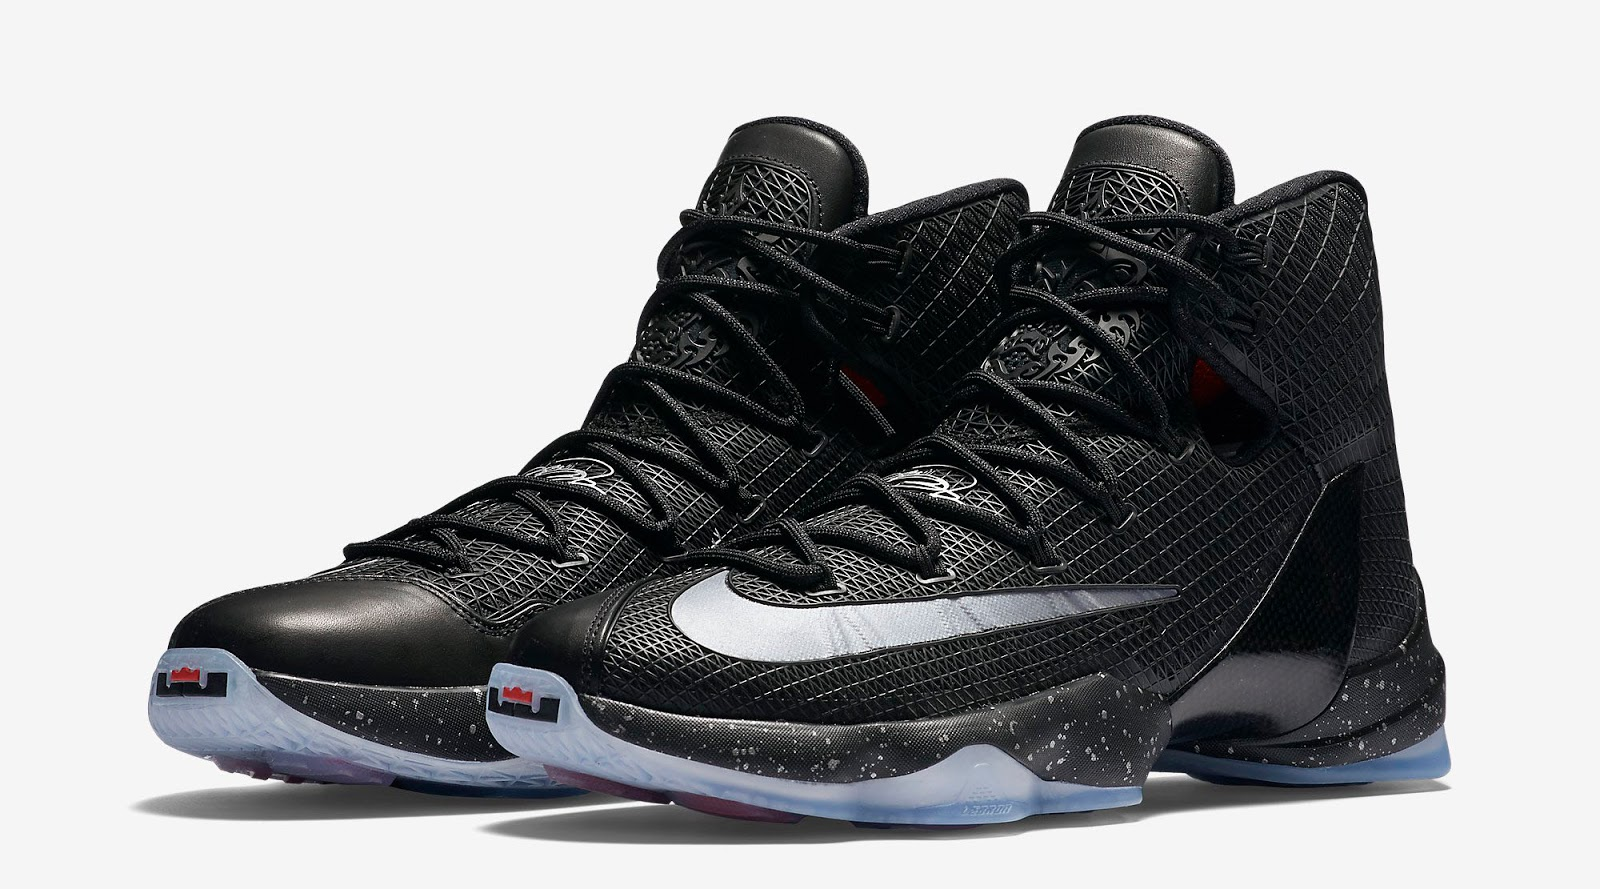 00099ed7aa8 ajordanxi Your  1 Source For Sneaker Release Dates  Nike LeBron 13 ...